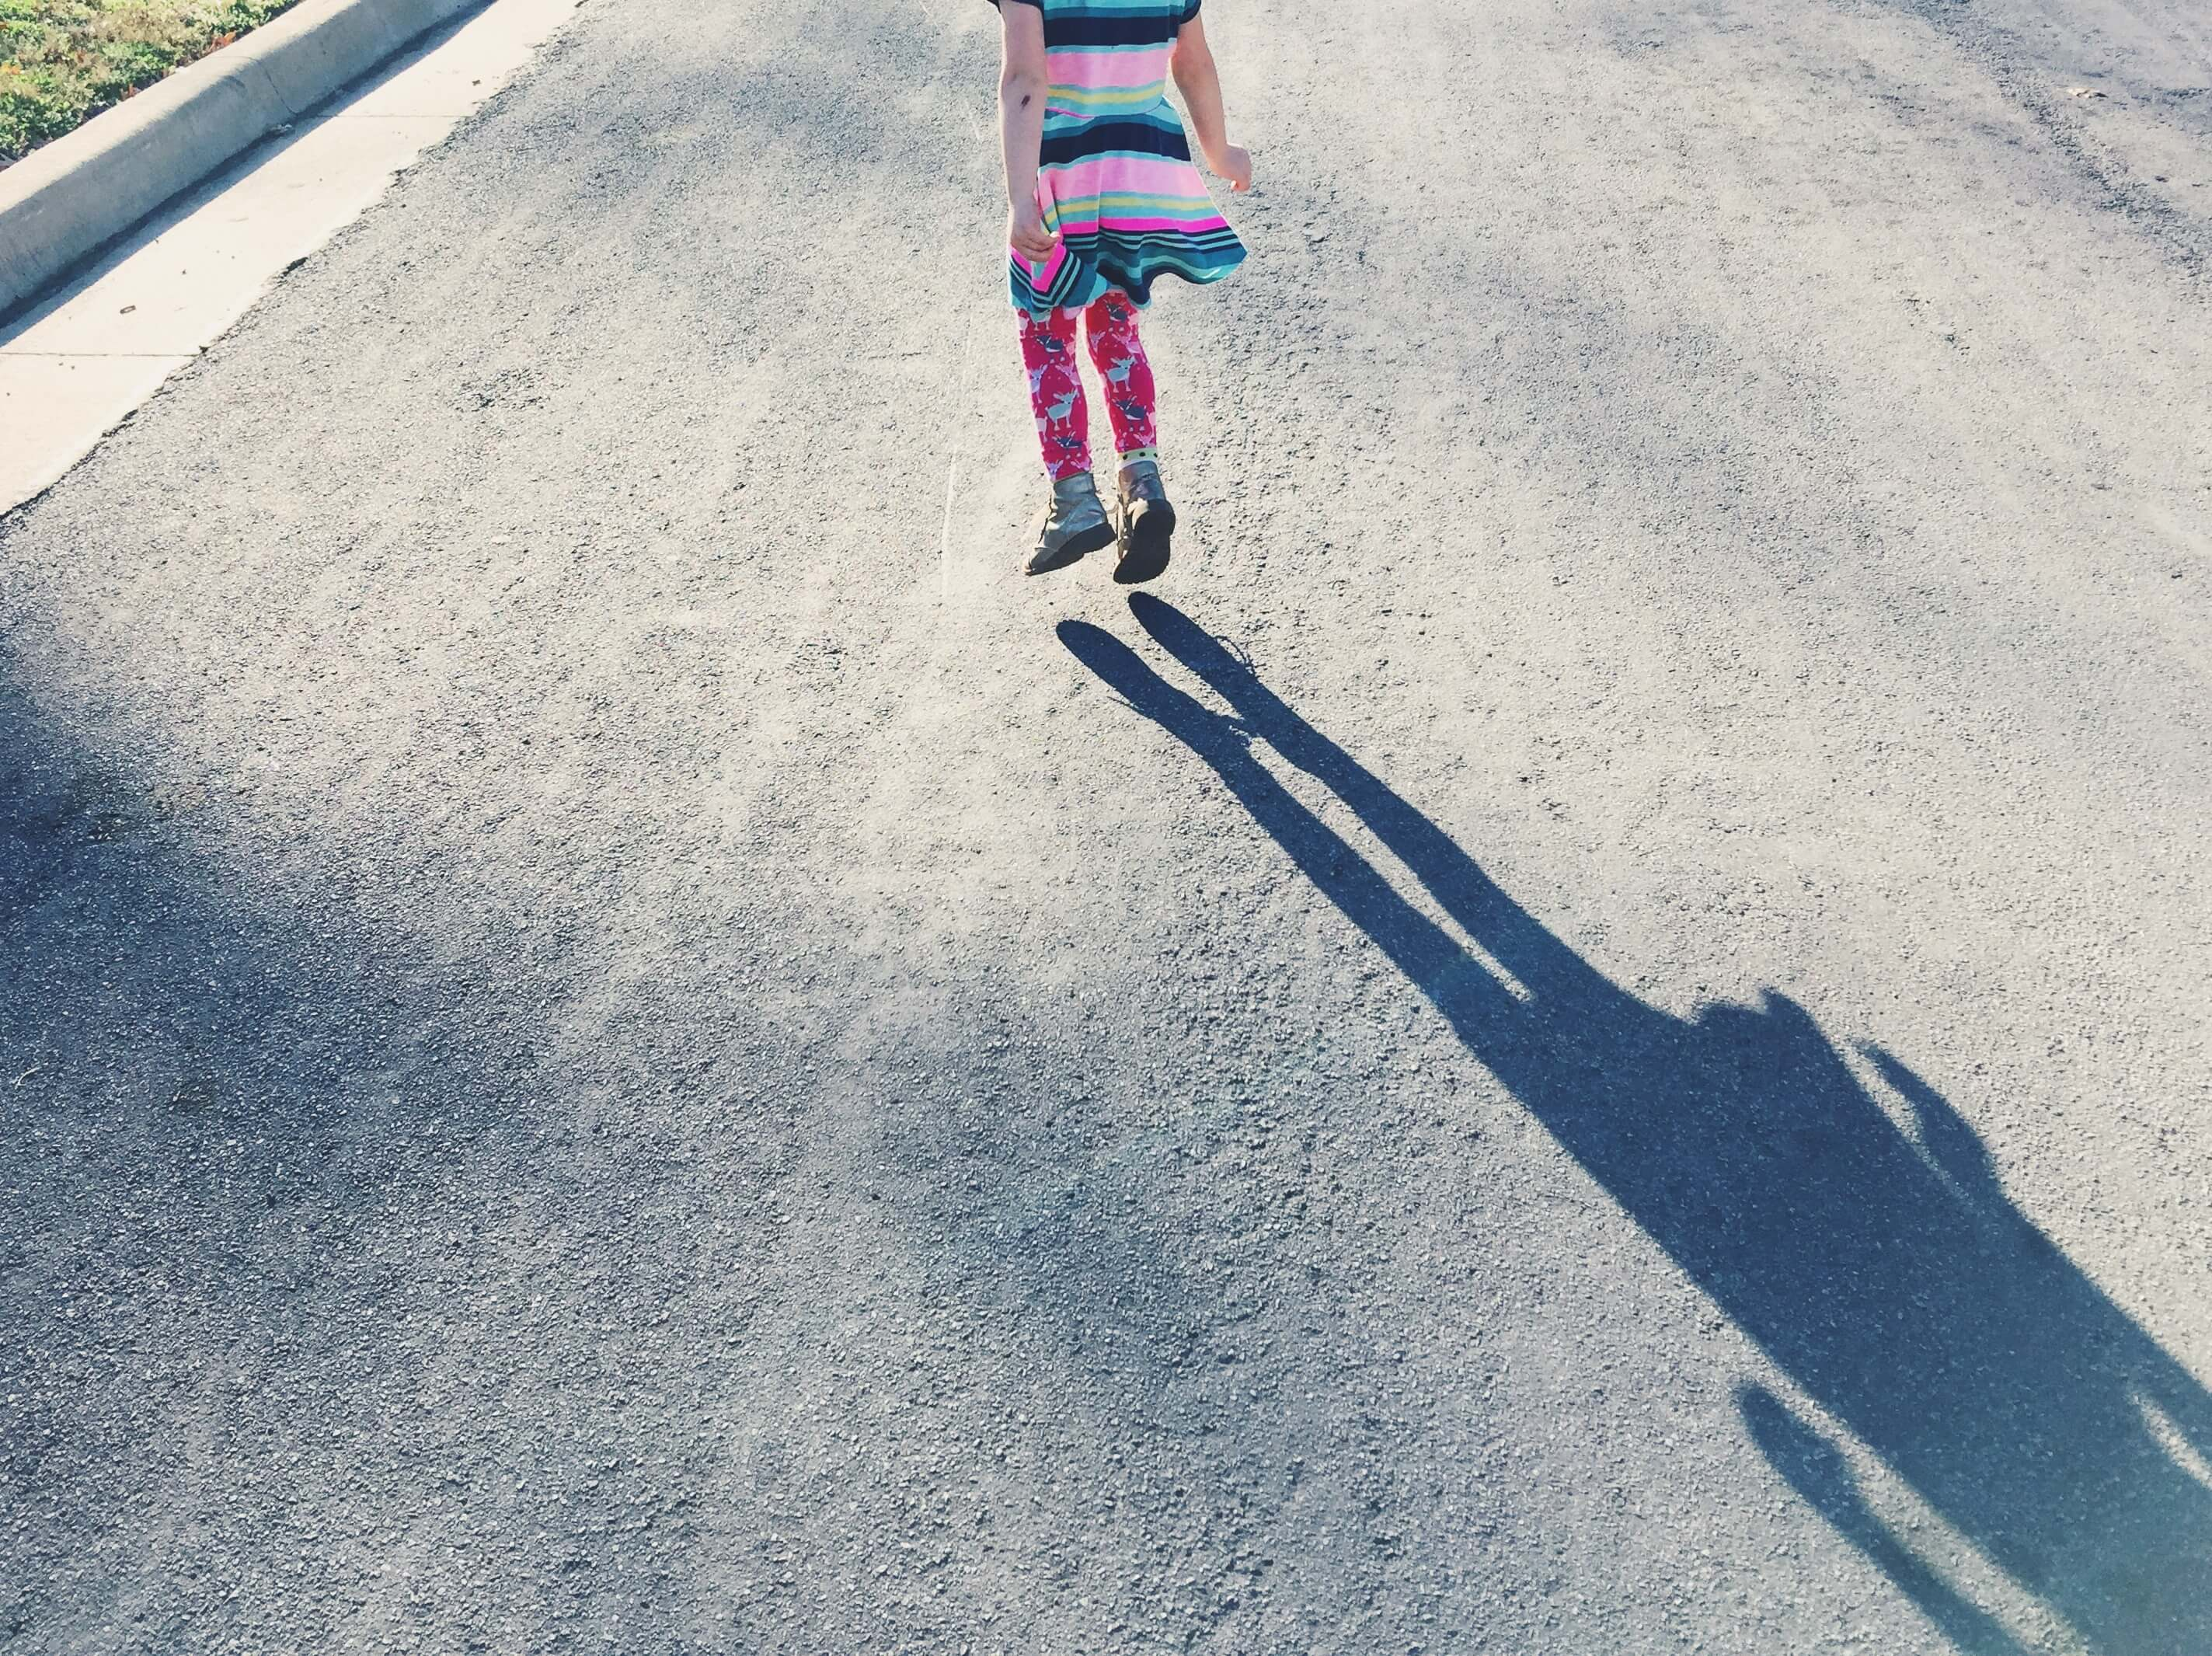 shadow of little girl jumping